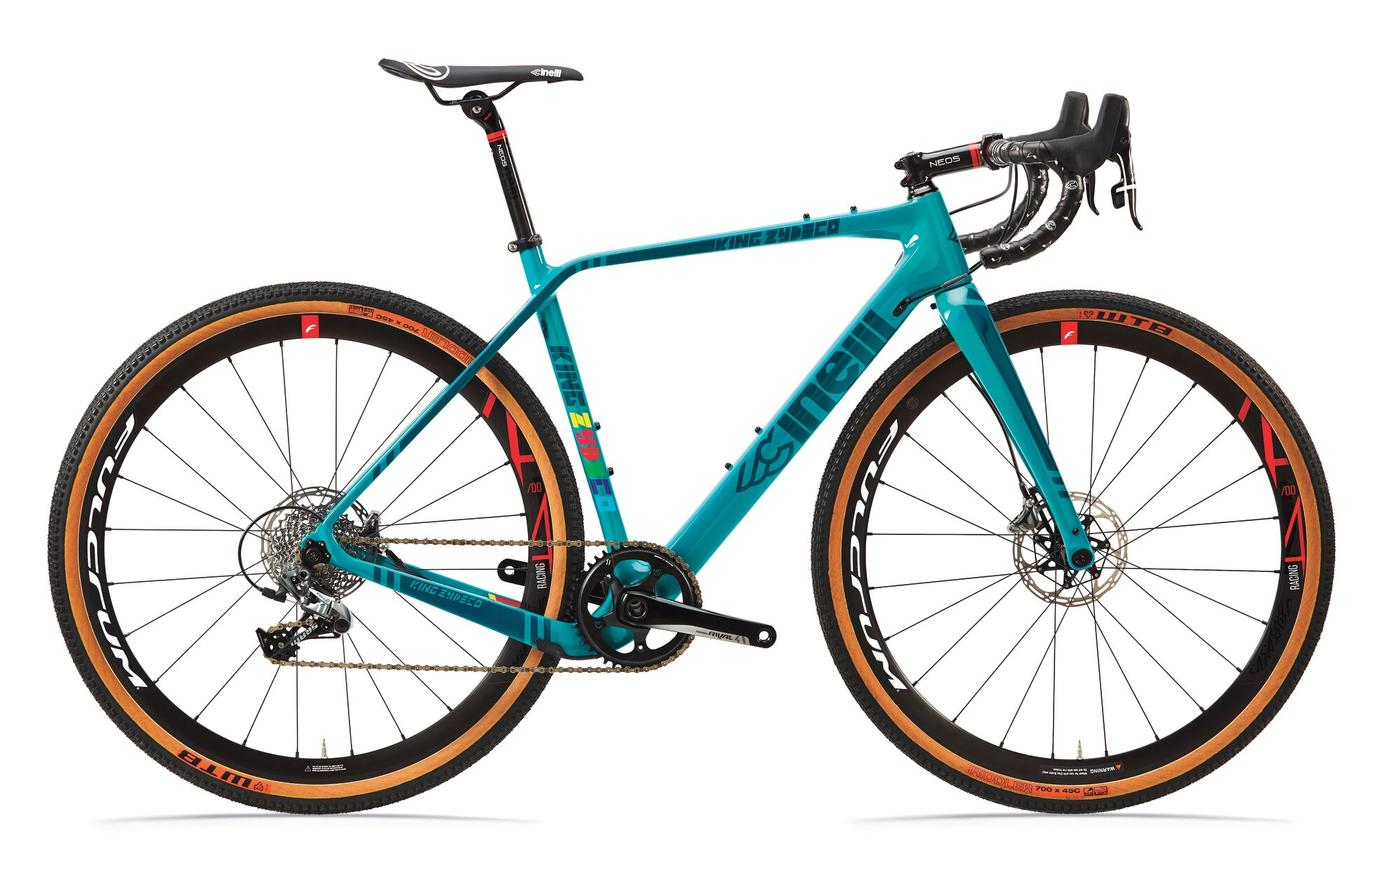 Cinelli's King Zydeco Frameset Features a Dual Rake Fork and Clearance for 2.1″ Tires 3